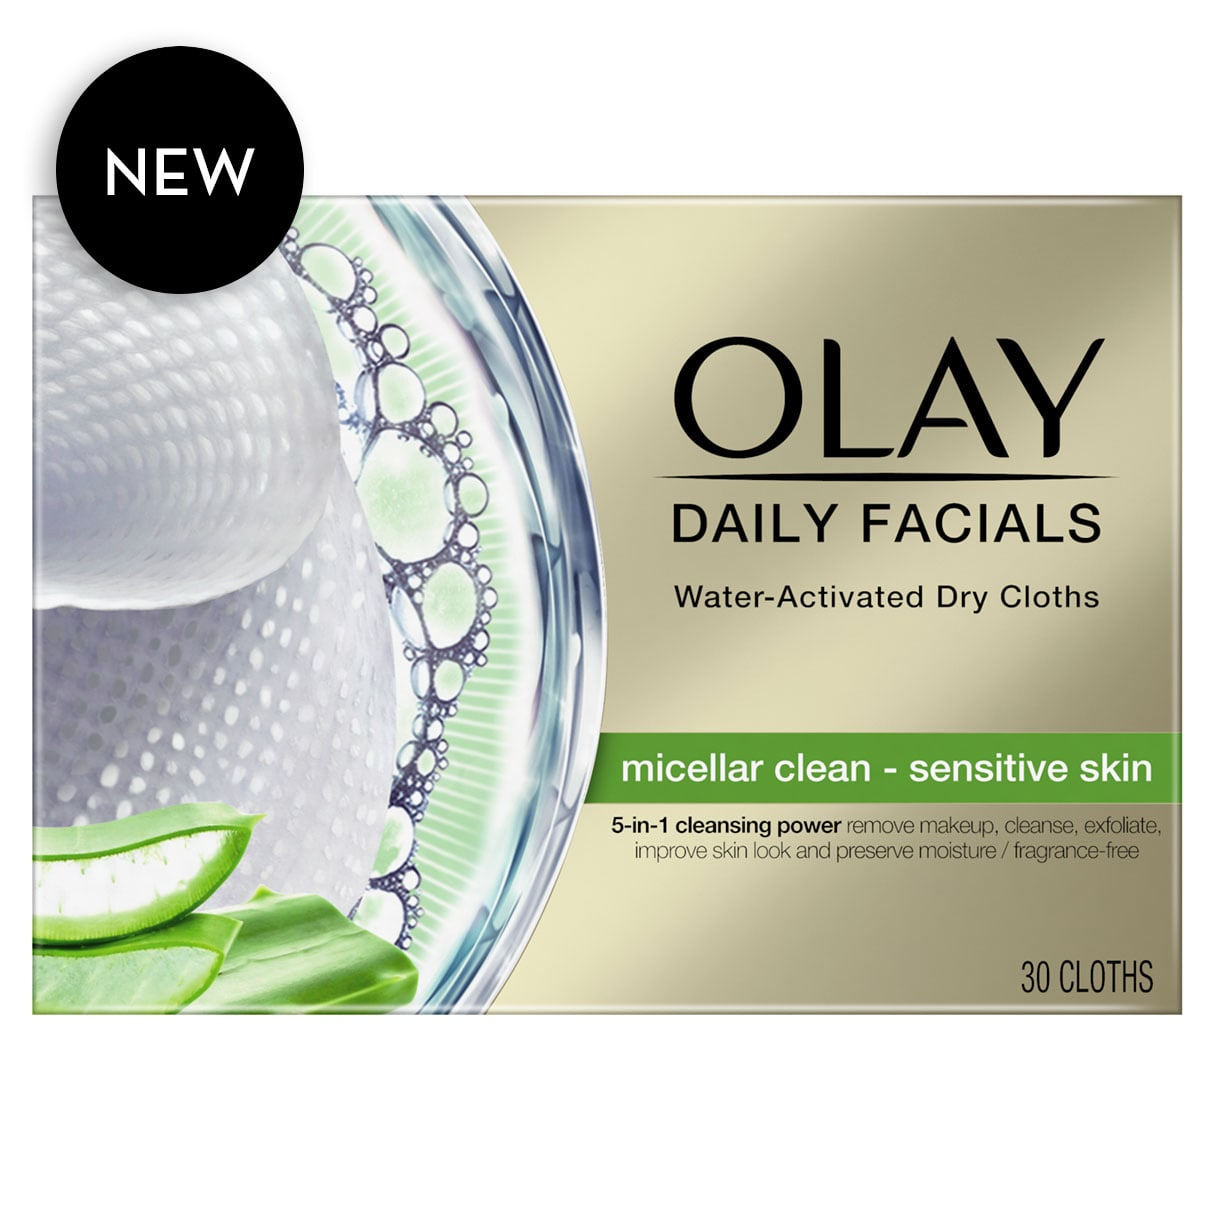 Olay Daily Facials, Sensitive skin, 30 Cloths